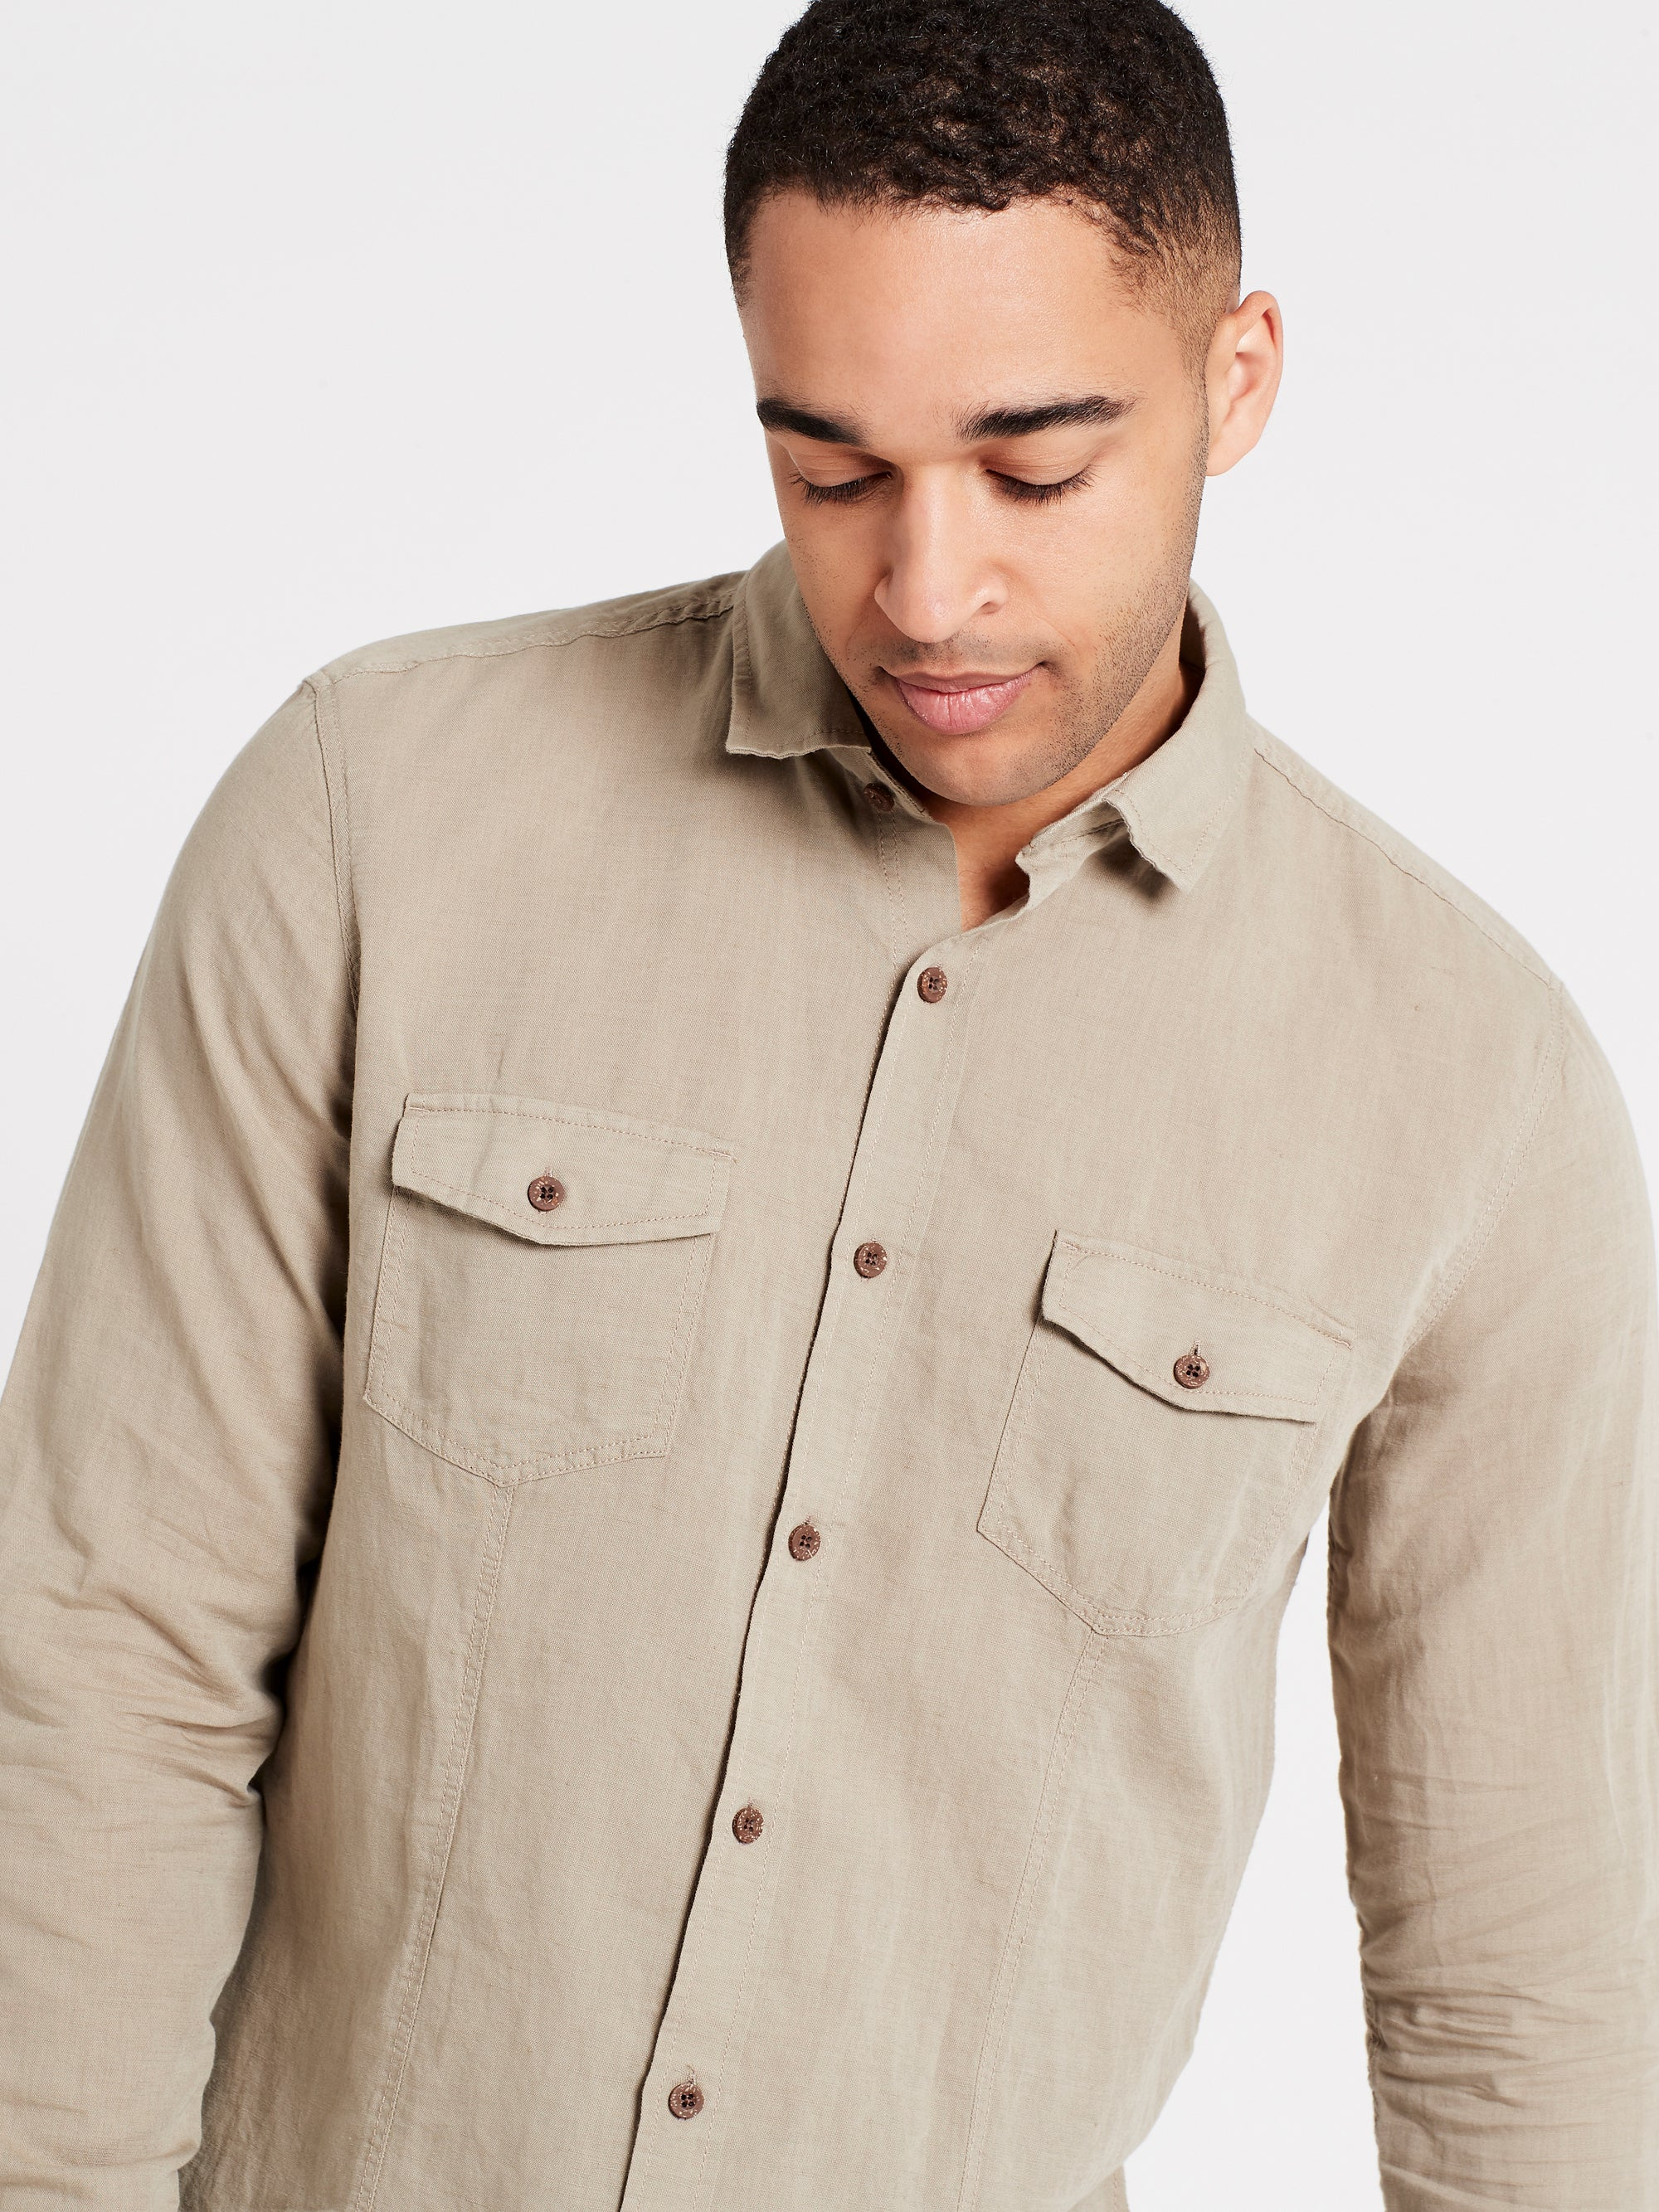 Mens Long Sleeve Shirt Vintage Khaki